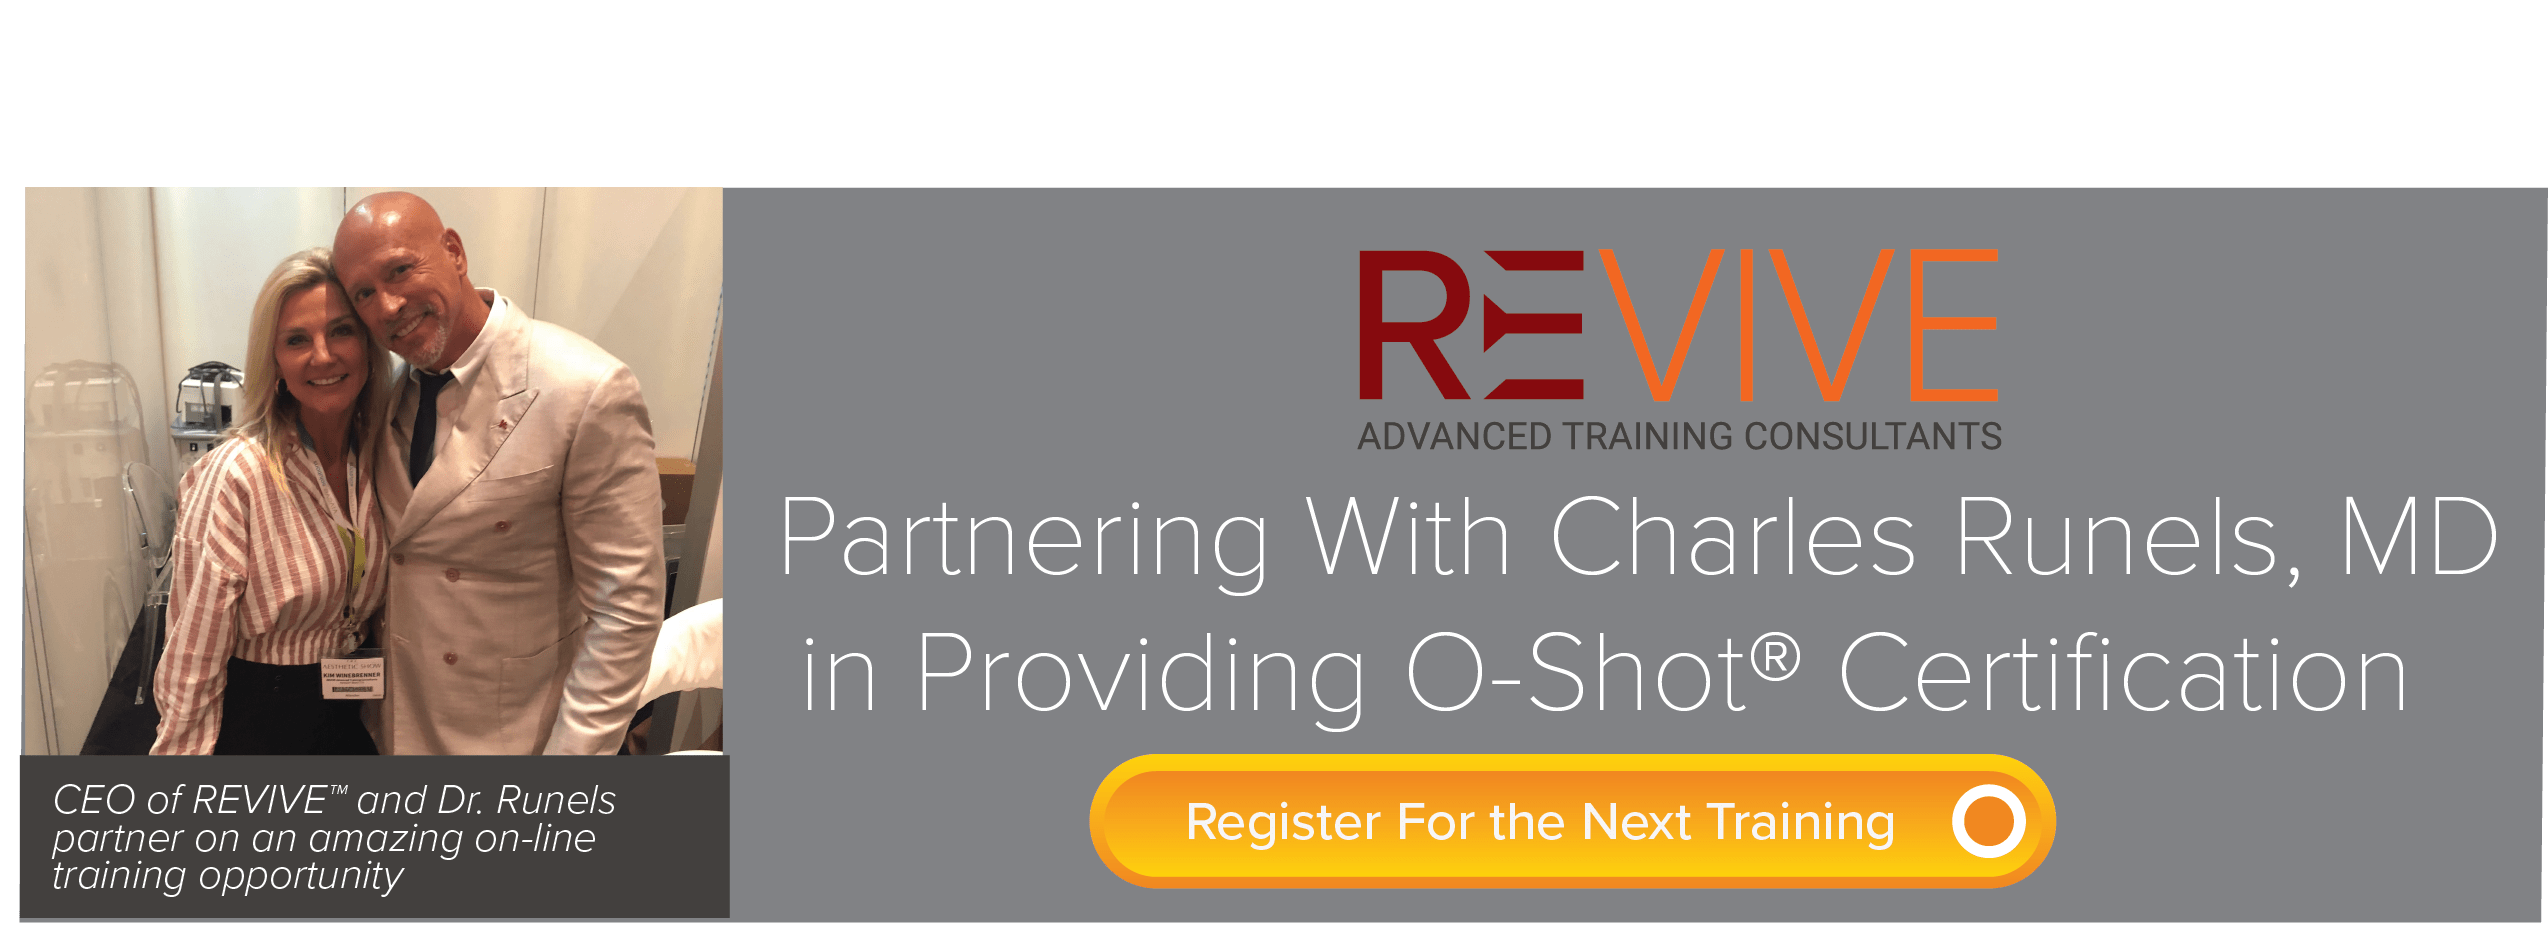 Dr Runels partners with REVIVE for Online Training